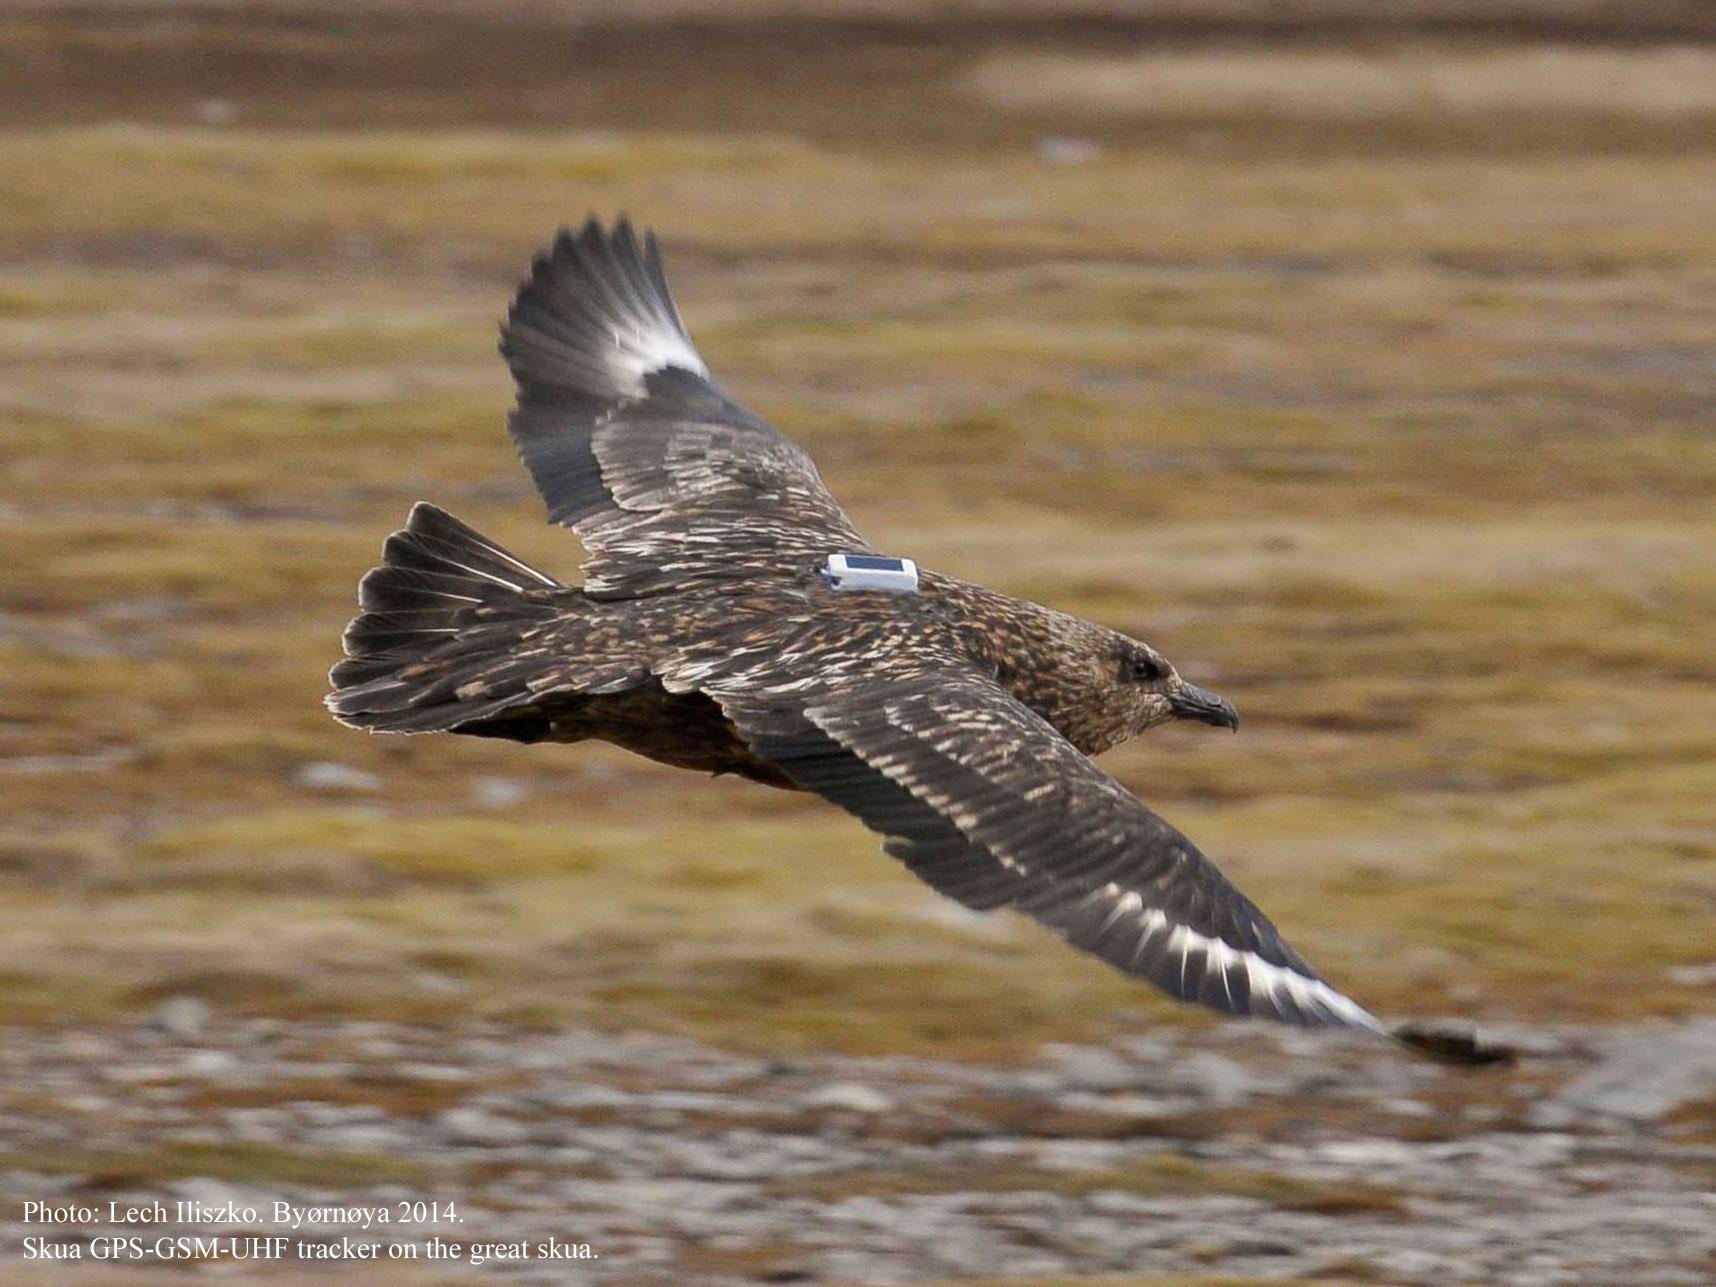 Skua_foto_LIL_podpisane_for_www_2016.jpg